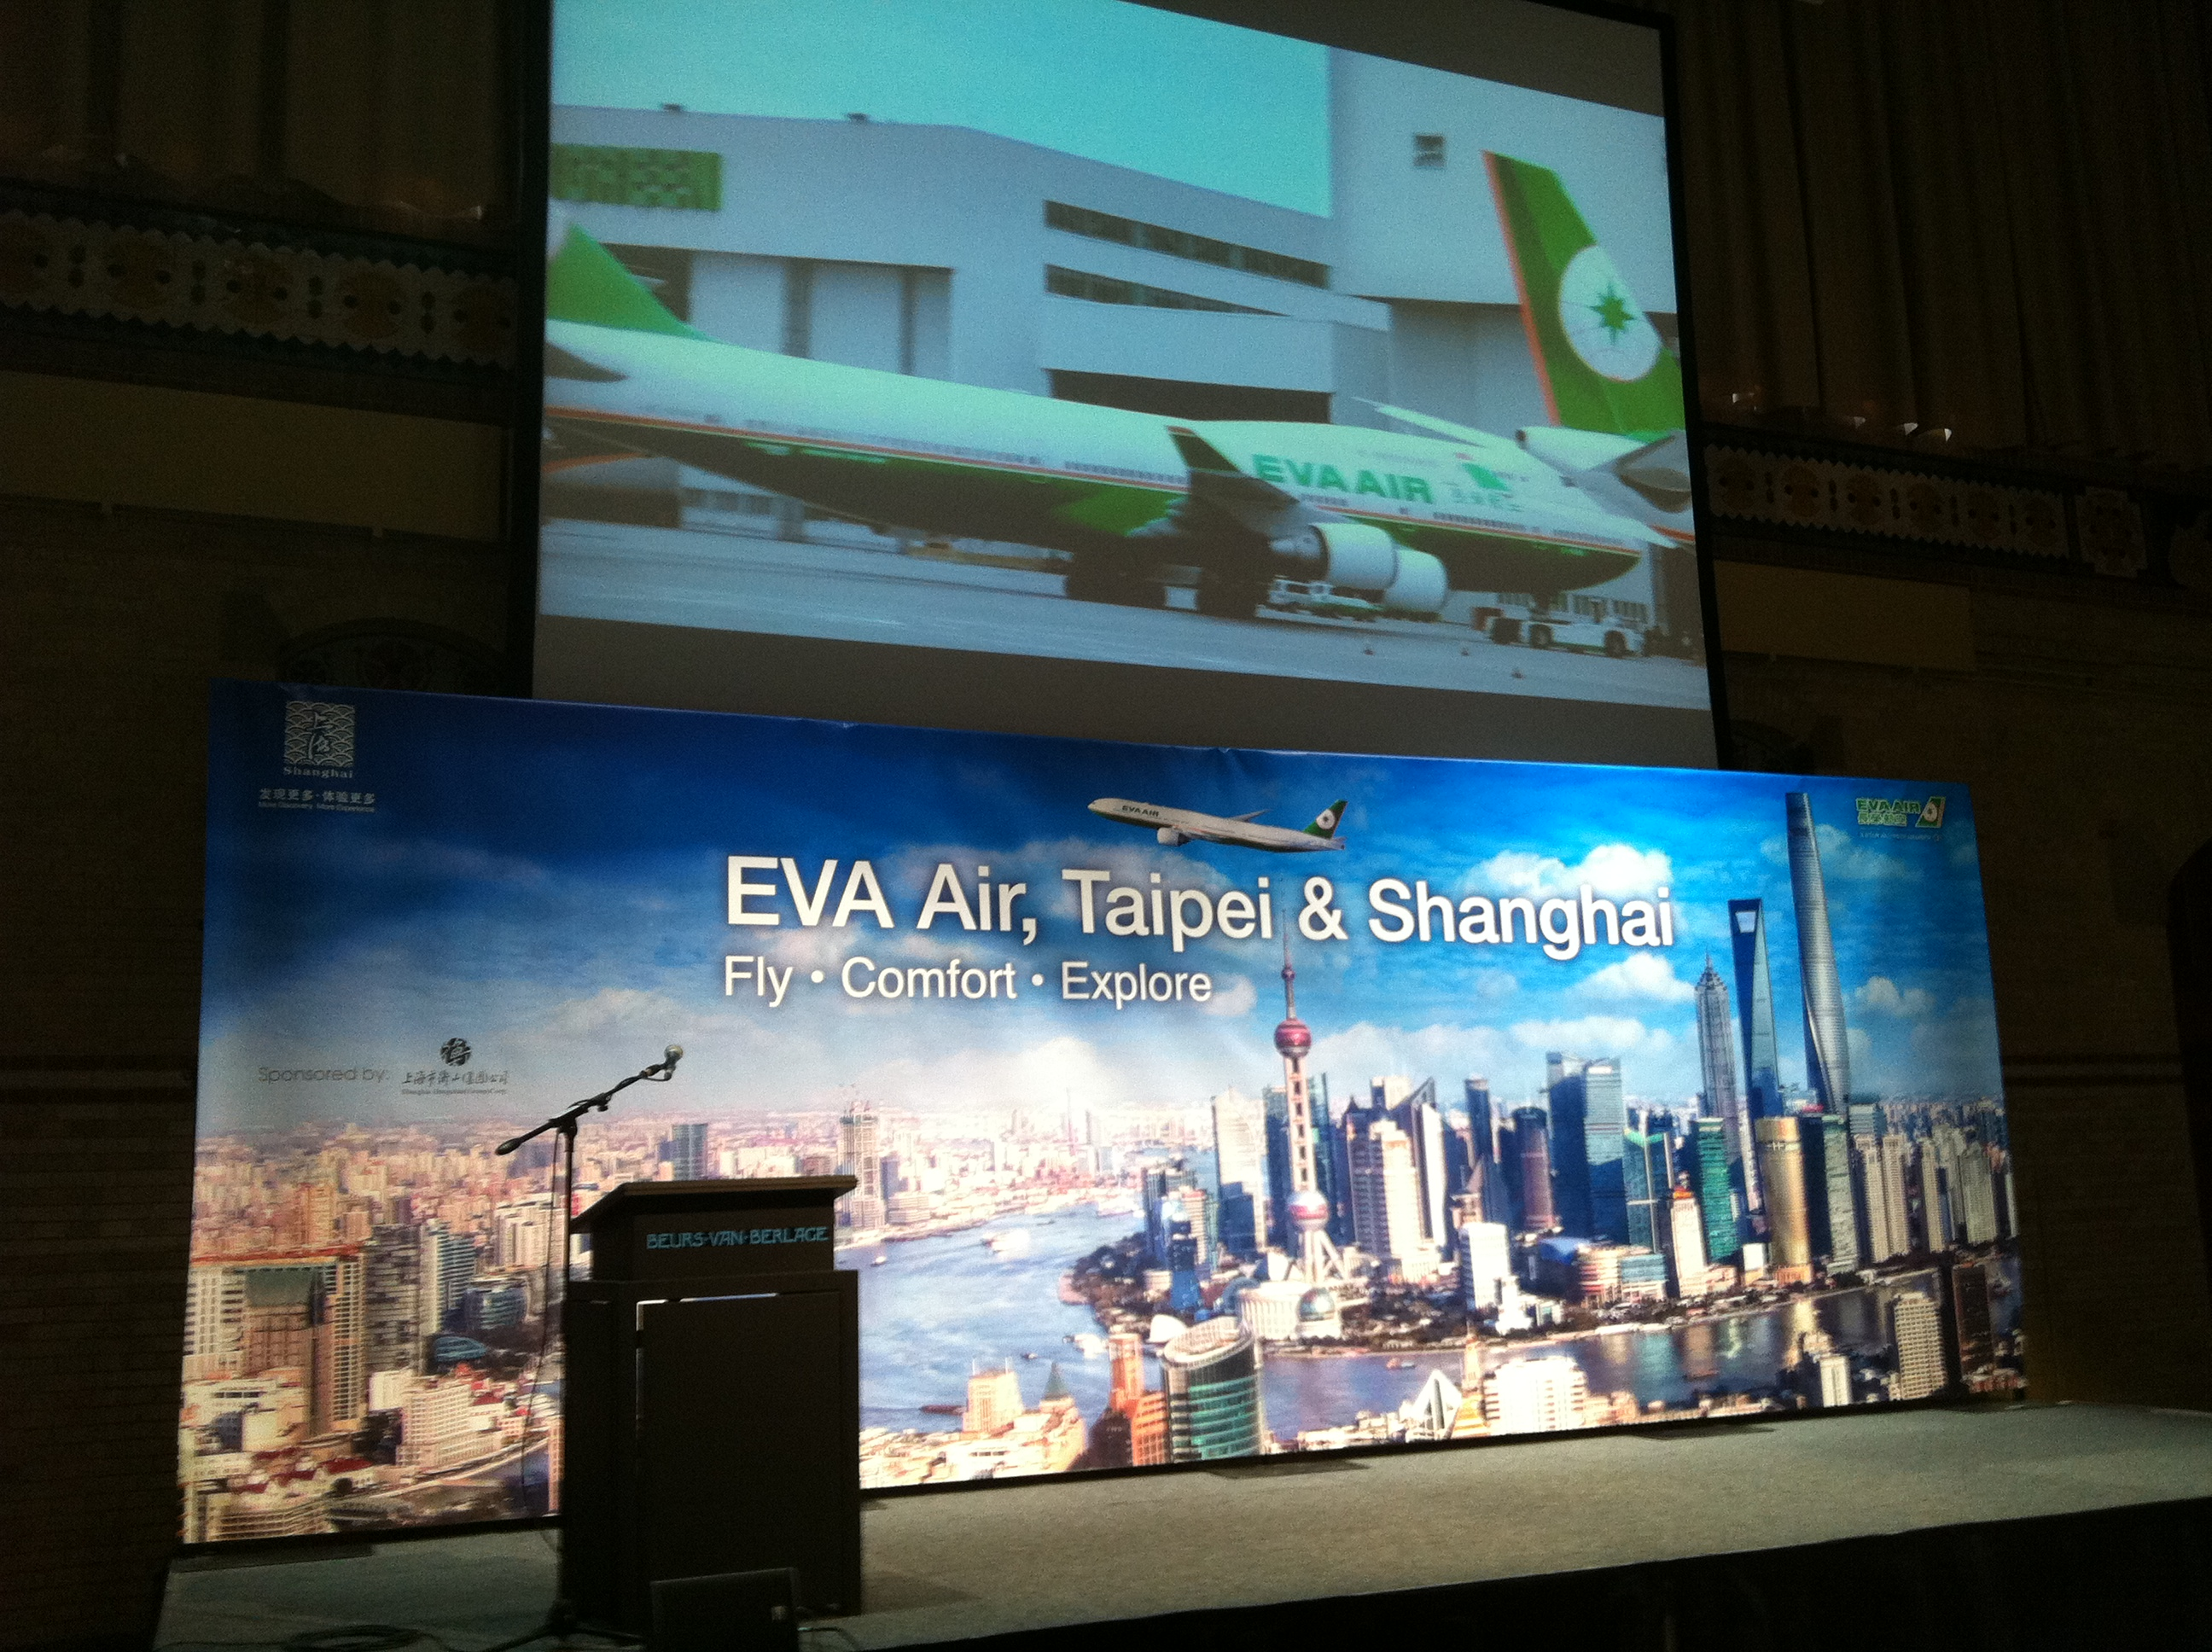 EVA Air and Shanghai